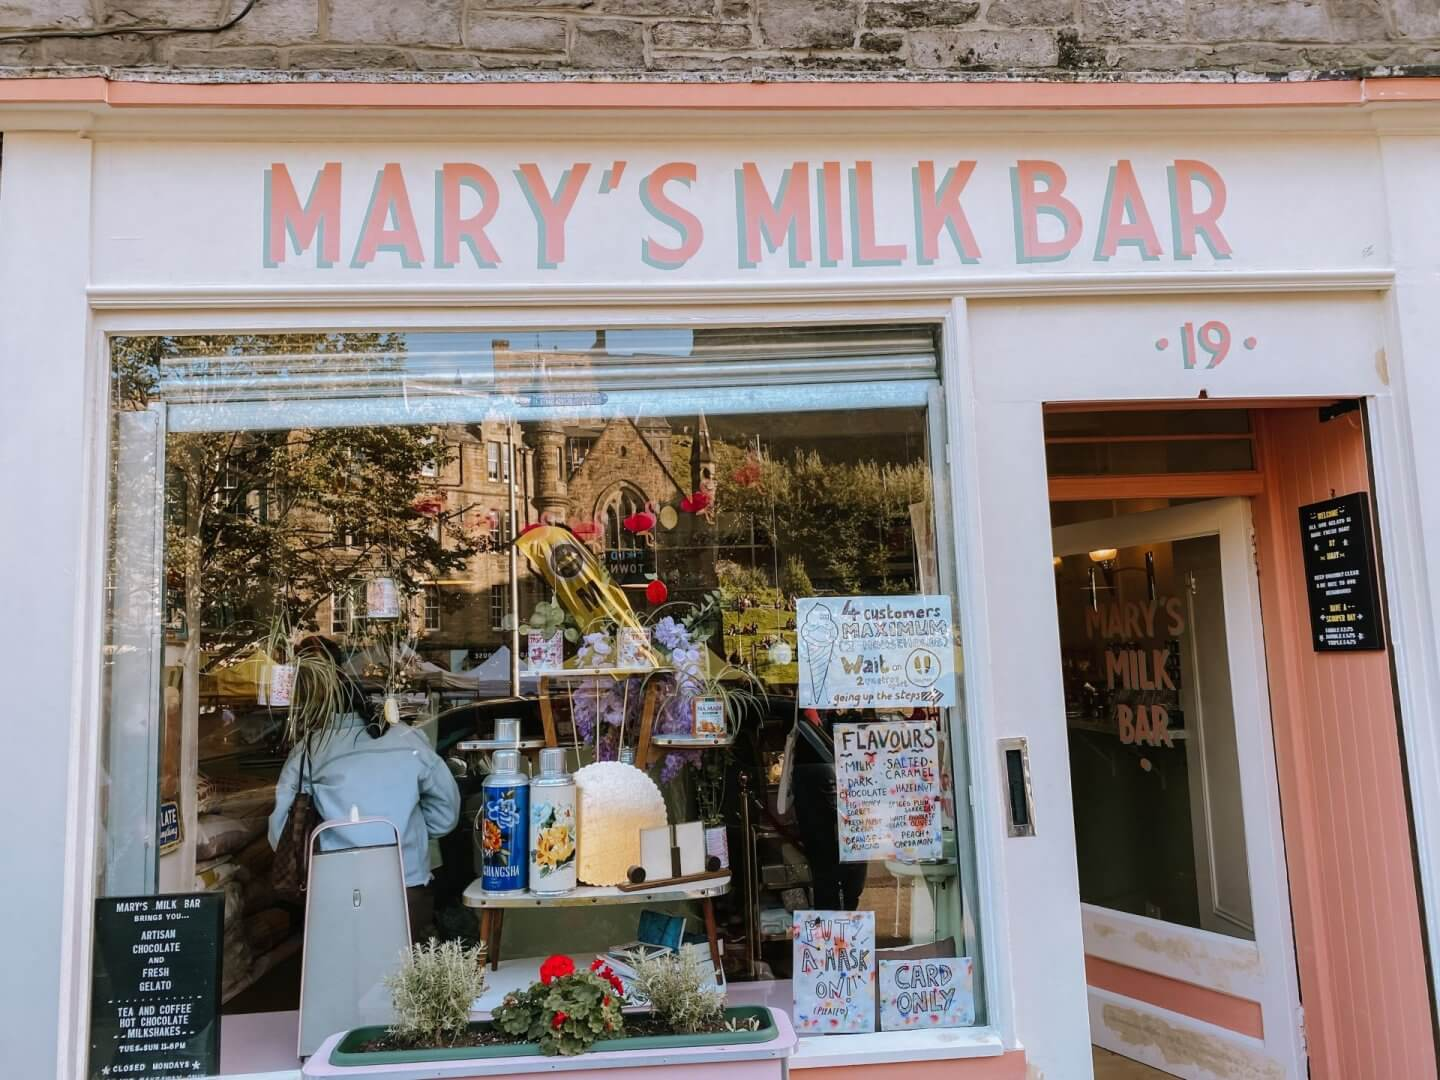 Image of Mary's Milk bar, one of the top things to do in Edinburgh